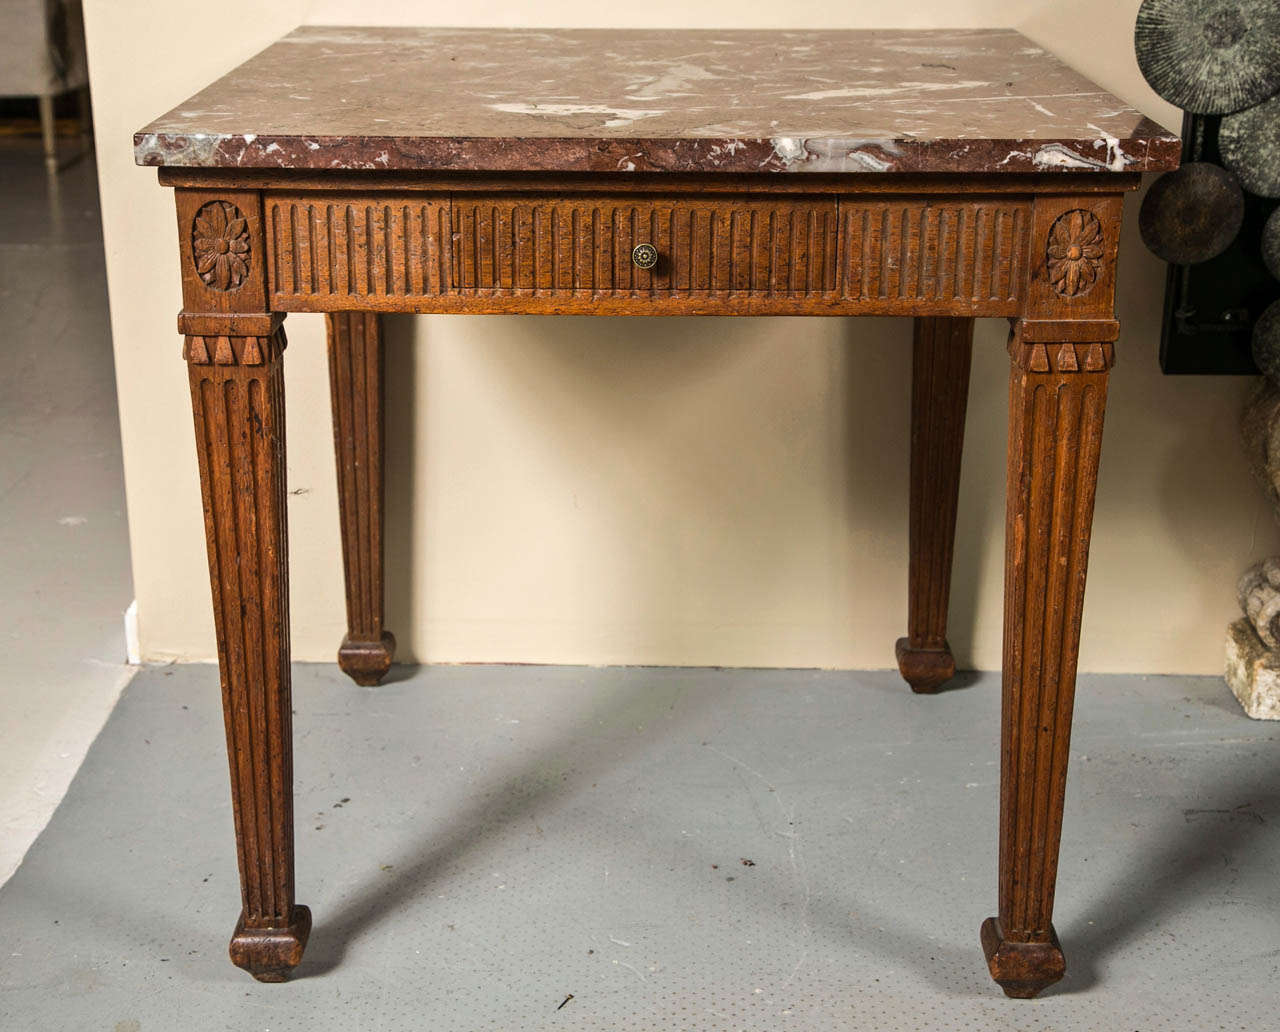 Italian Square Fluted Apron And Leg Walnut Table With Siena Marble Top 2